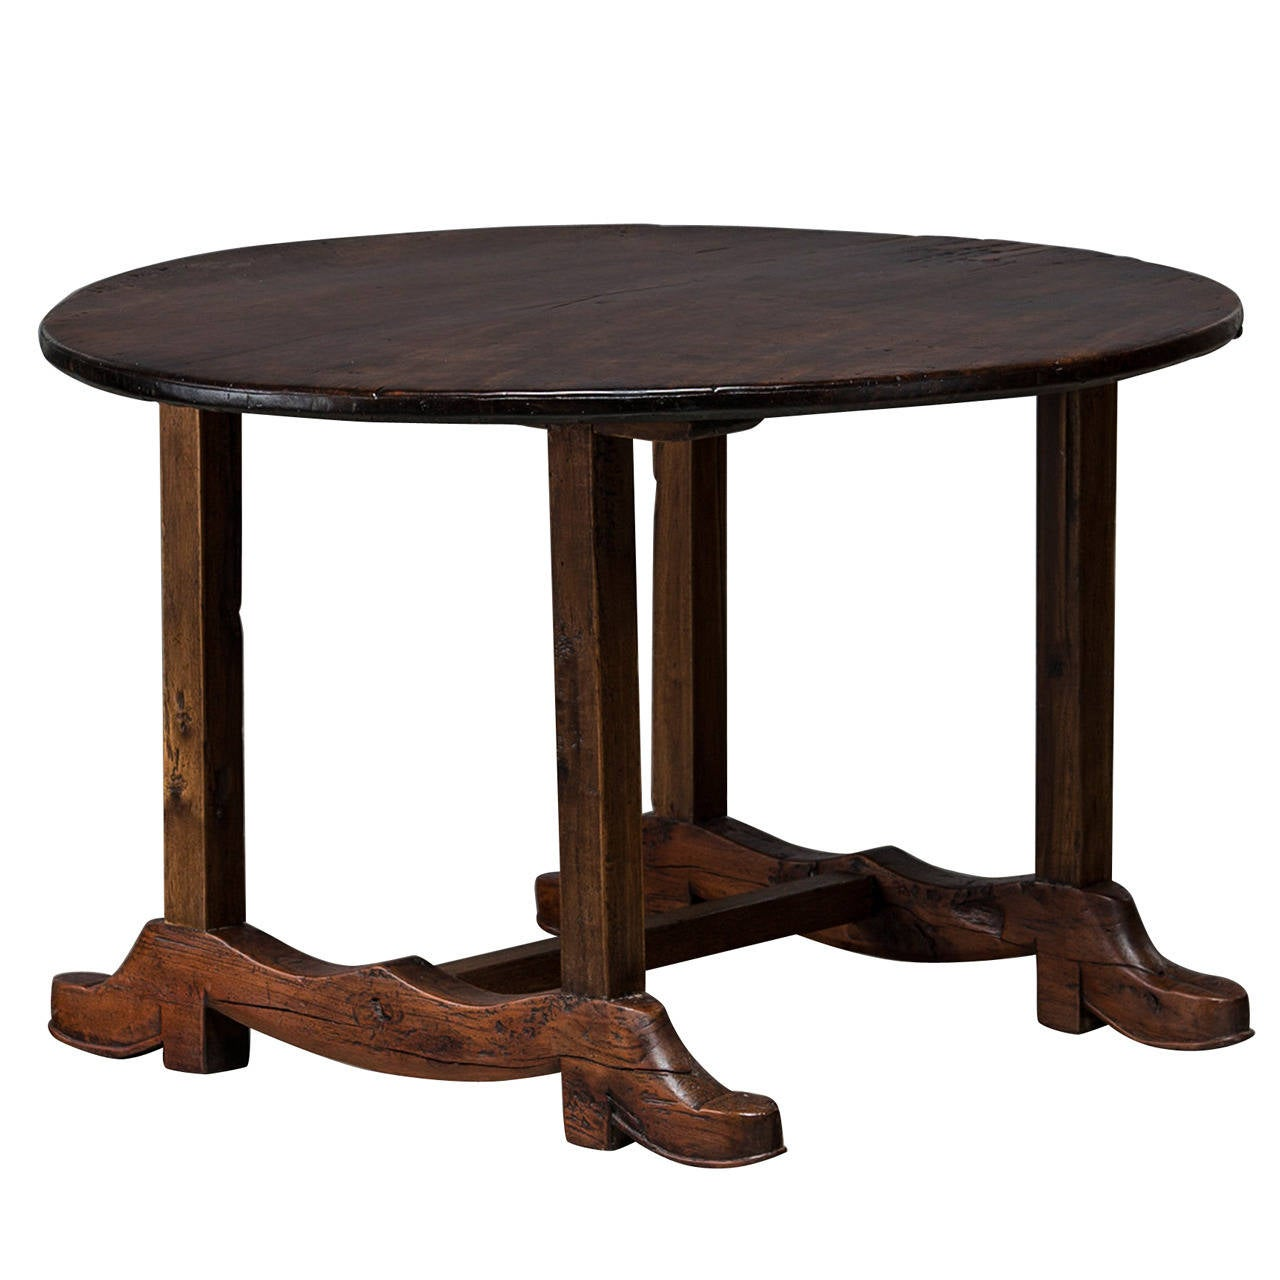 Round Dining Table Made Of Narra Hardwood At 1stdibs